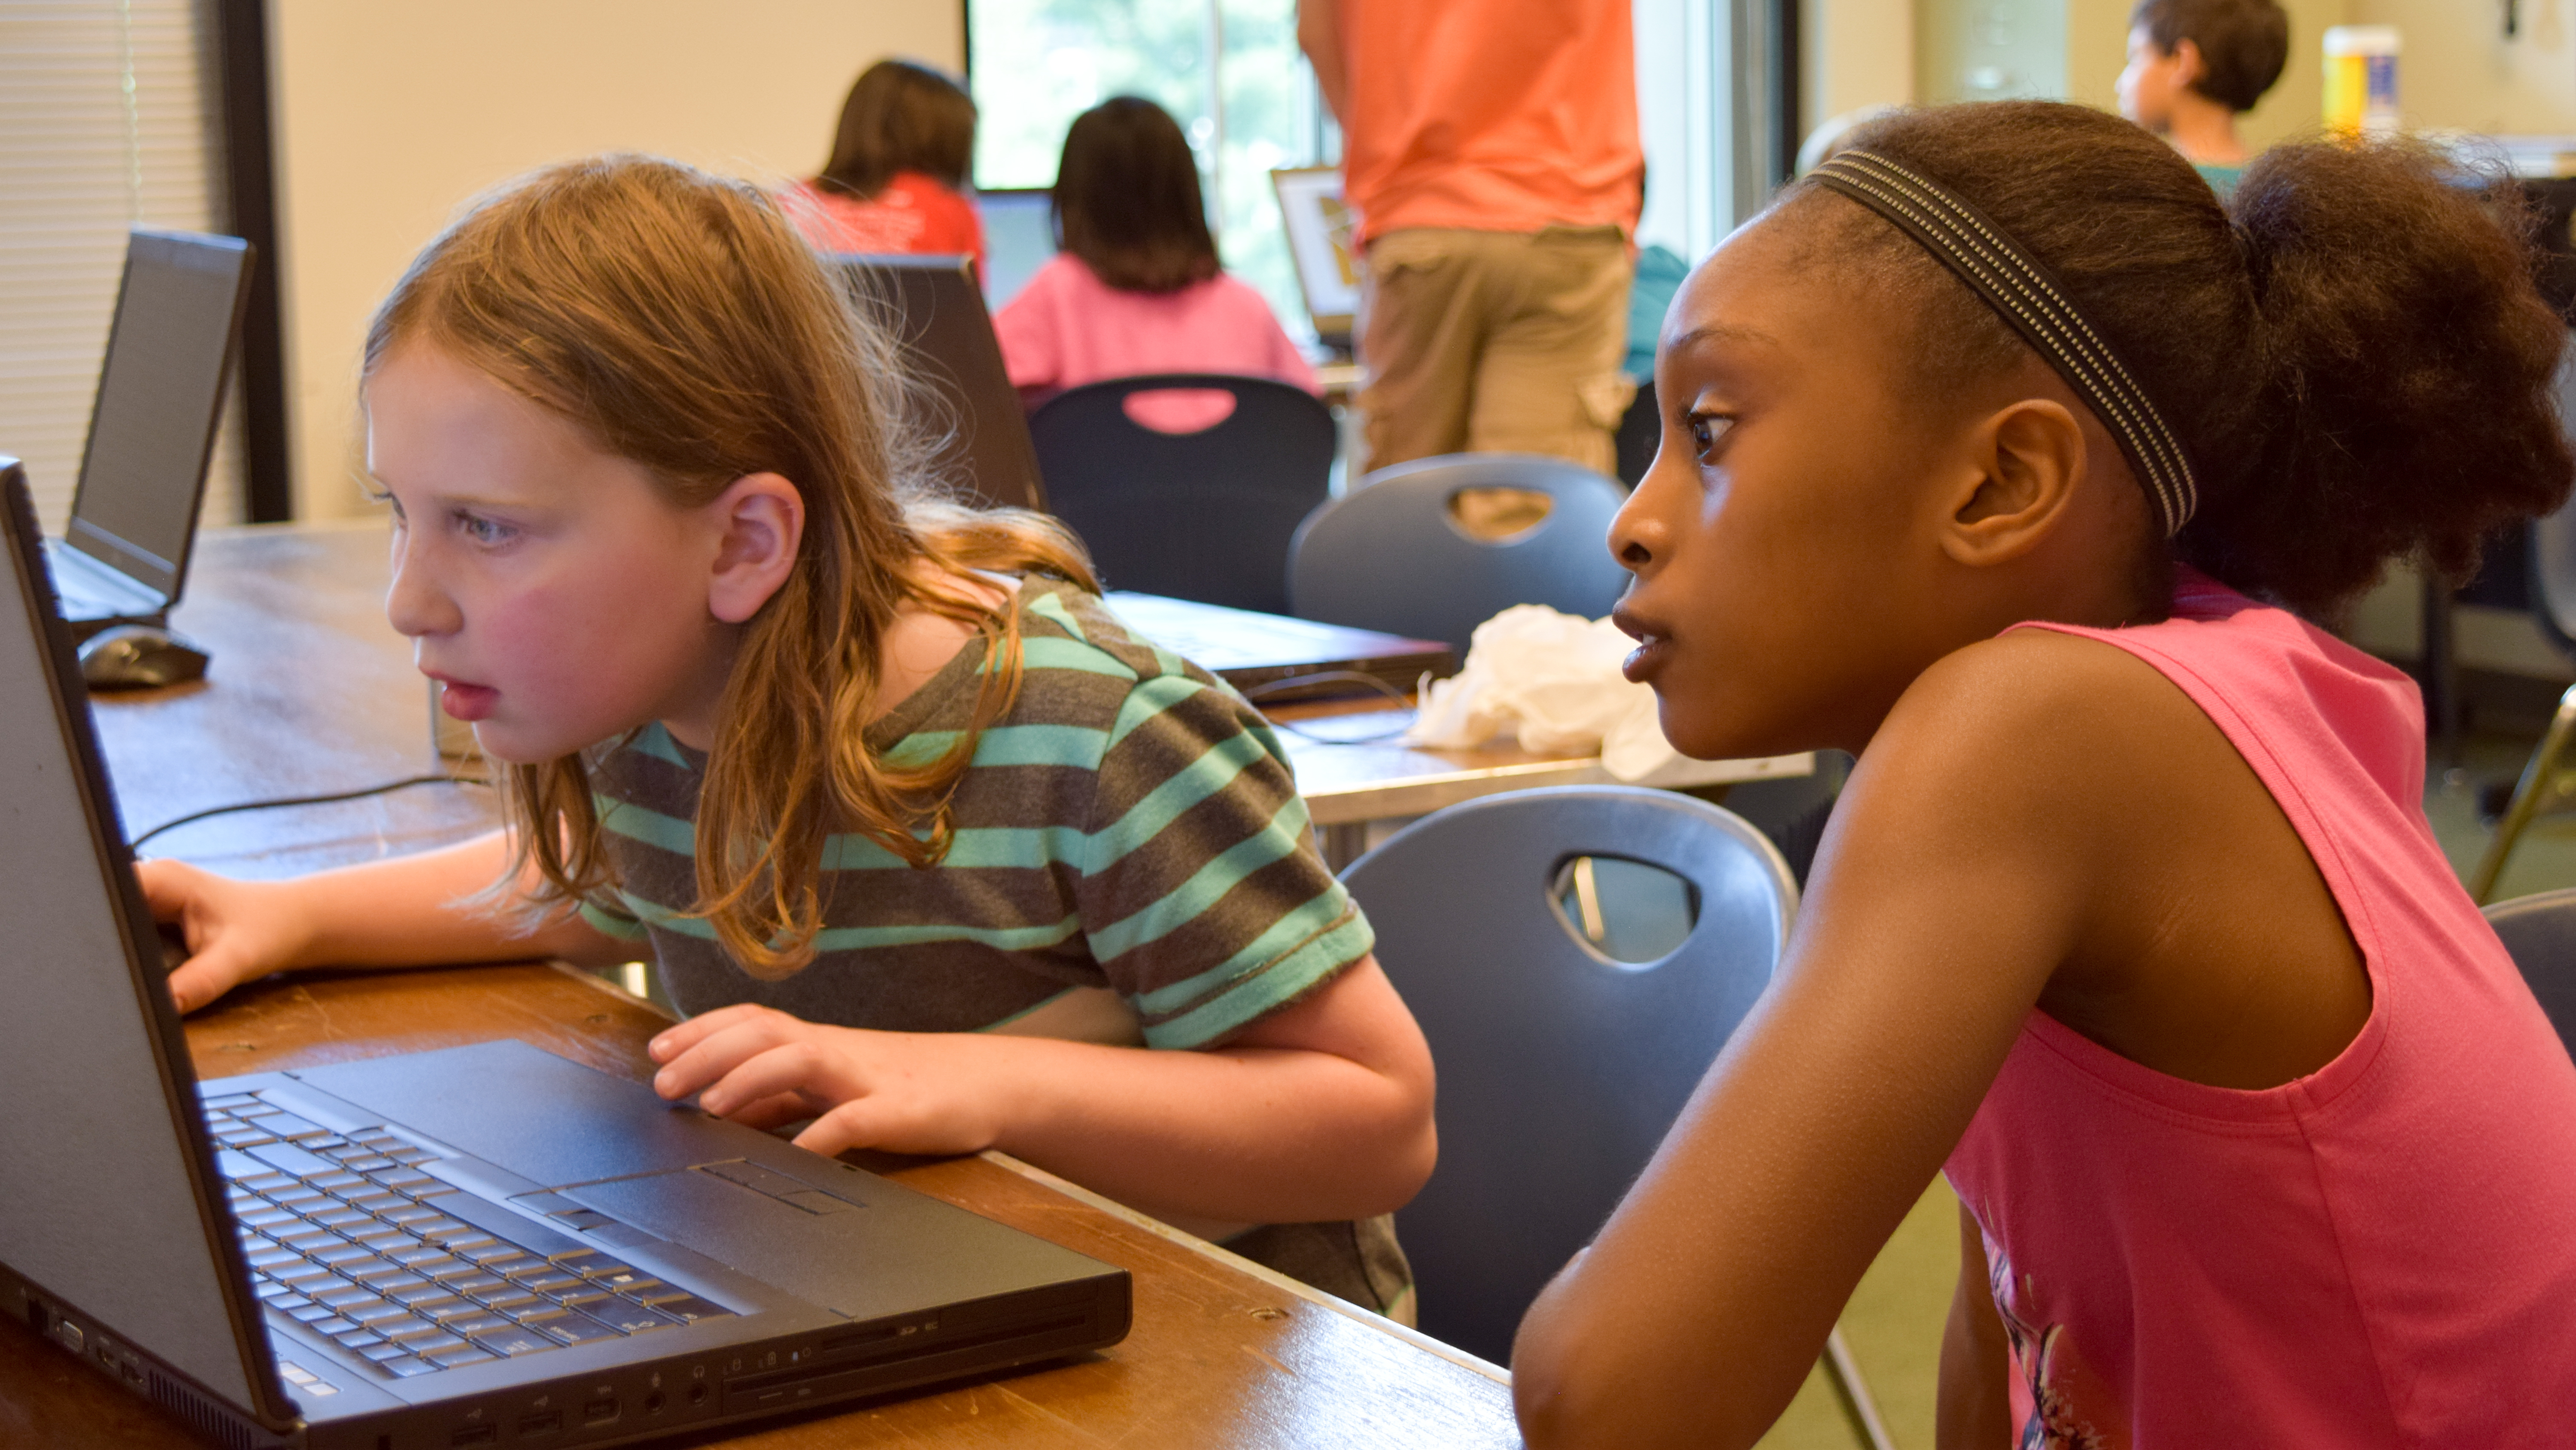 Summer Program - Coding | TIC Summer Camp: McLean